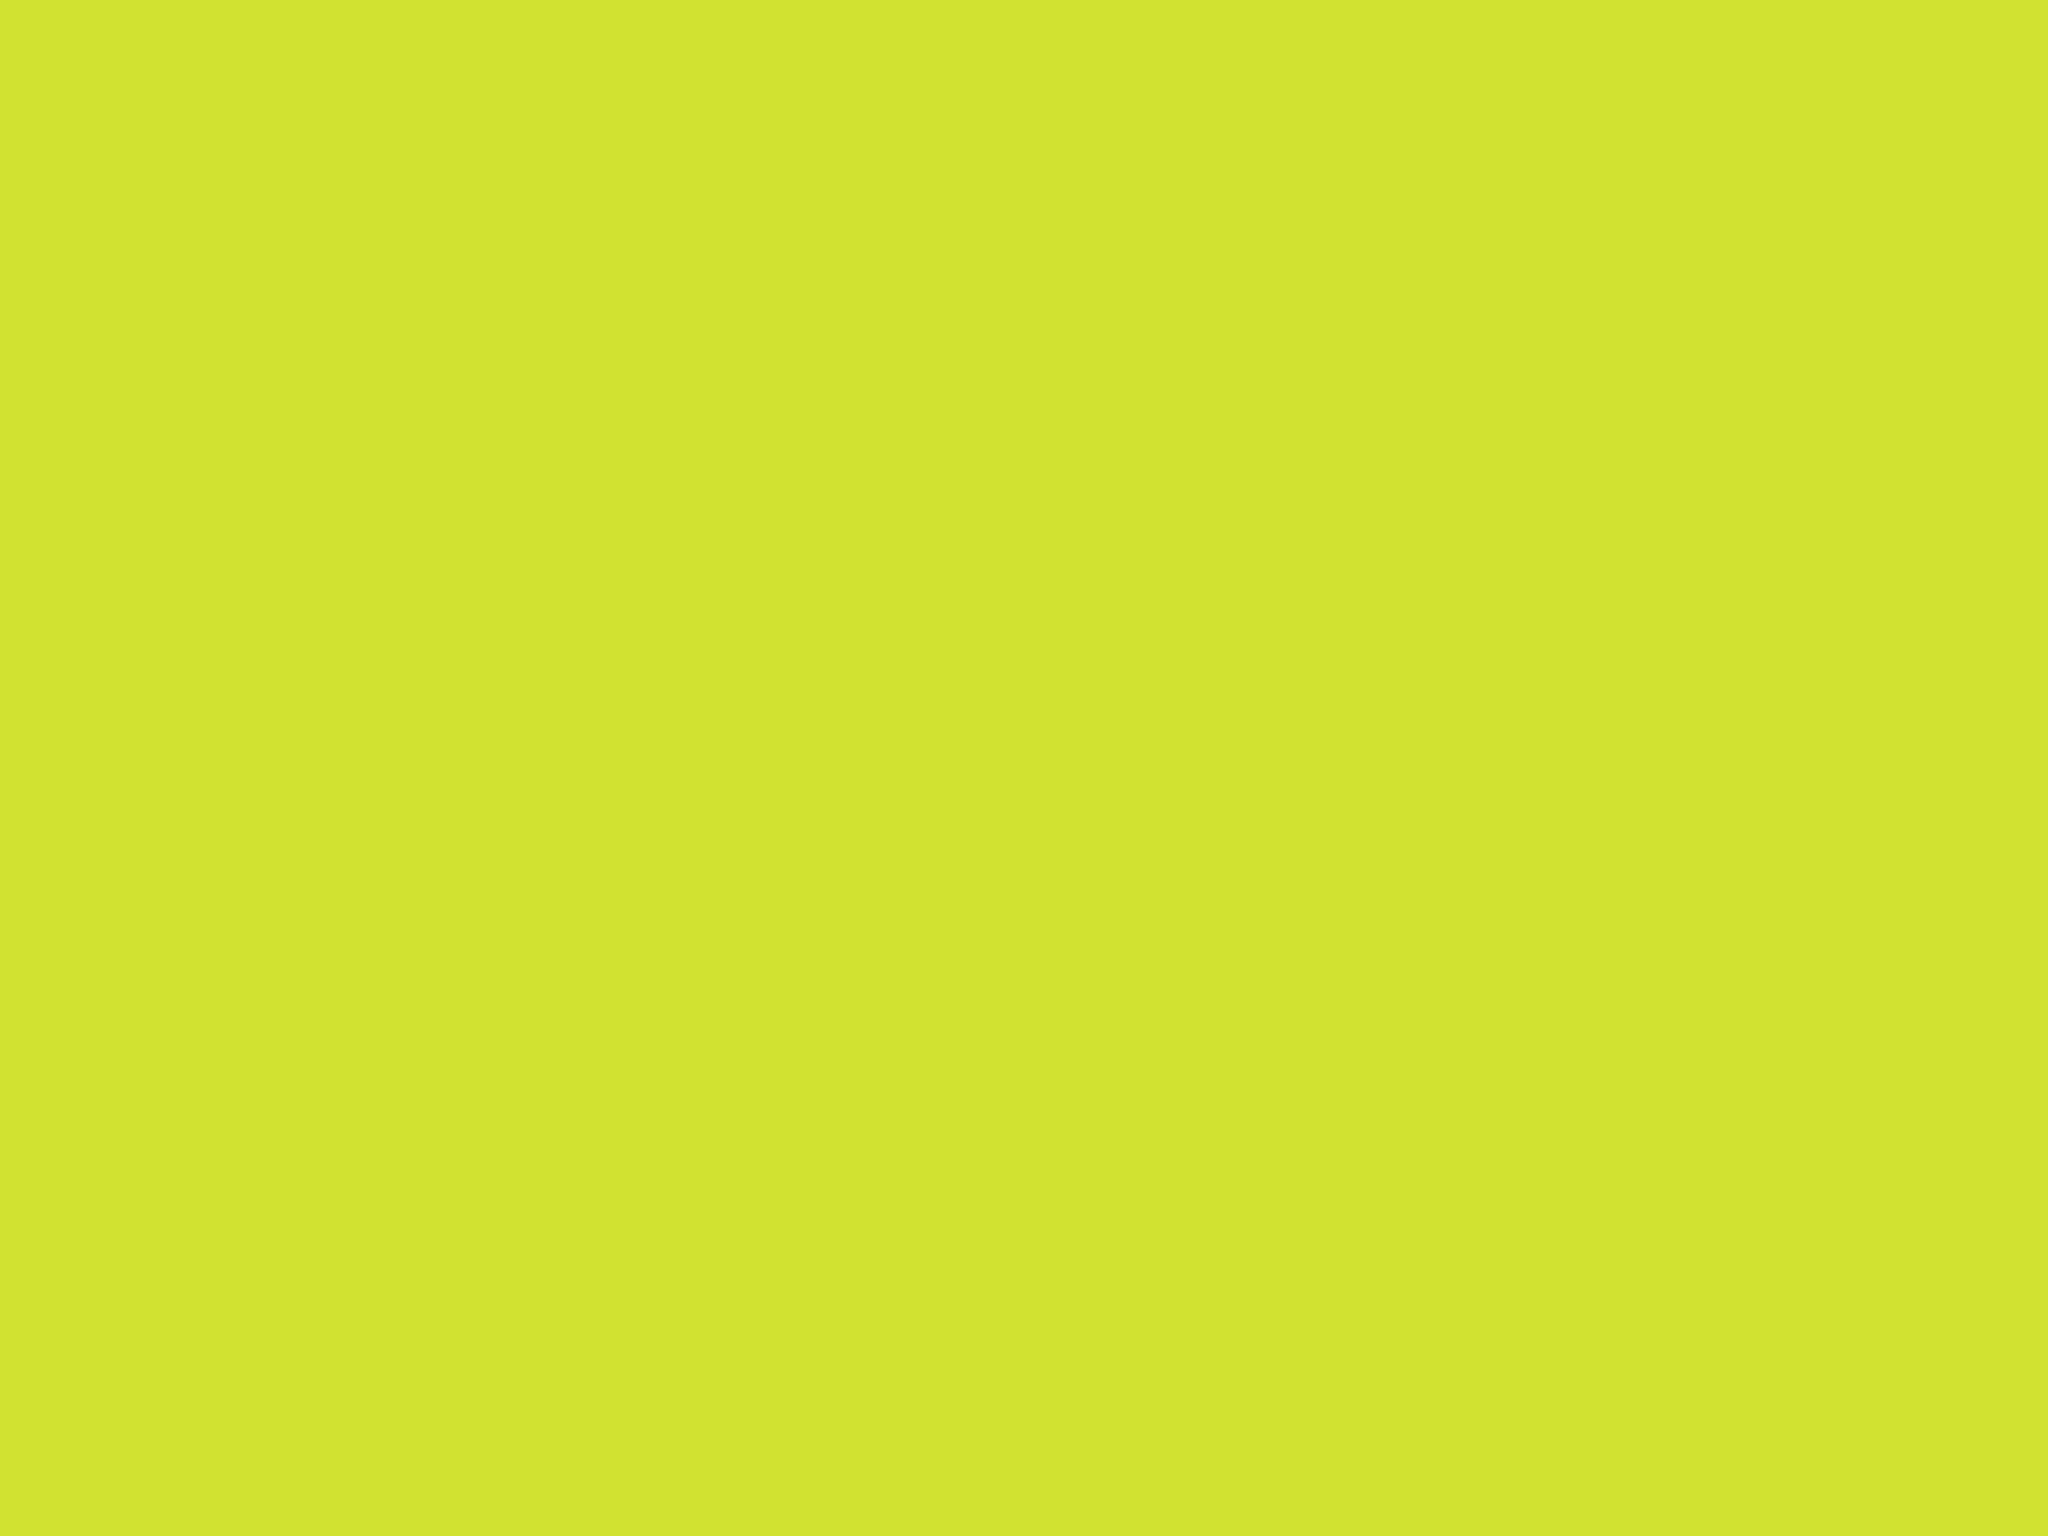 2048x1536 Pear Solid Color Background